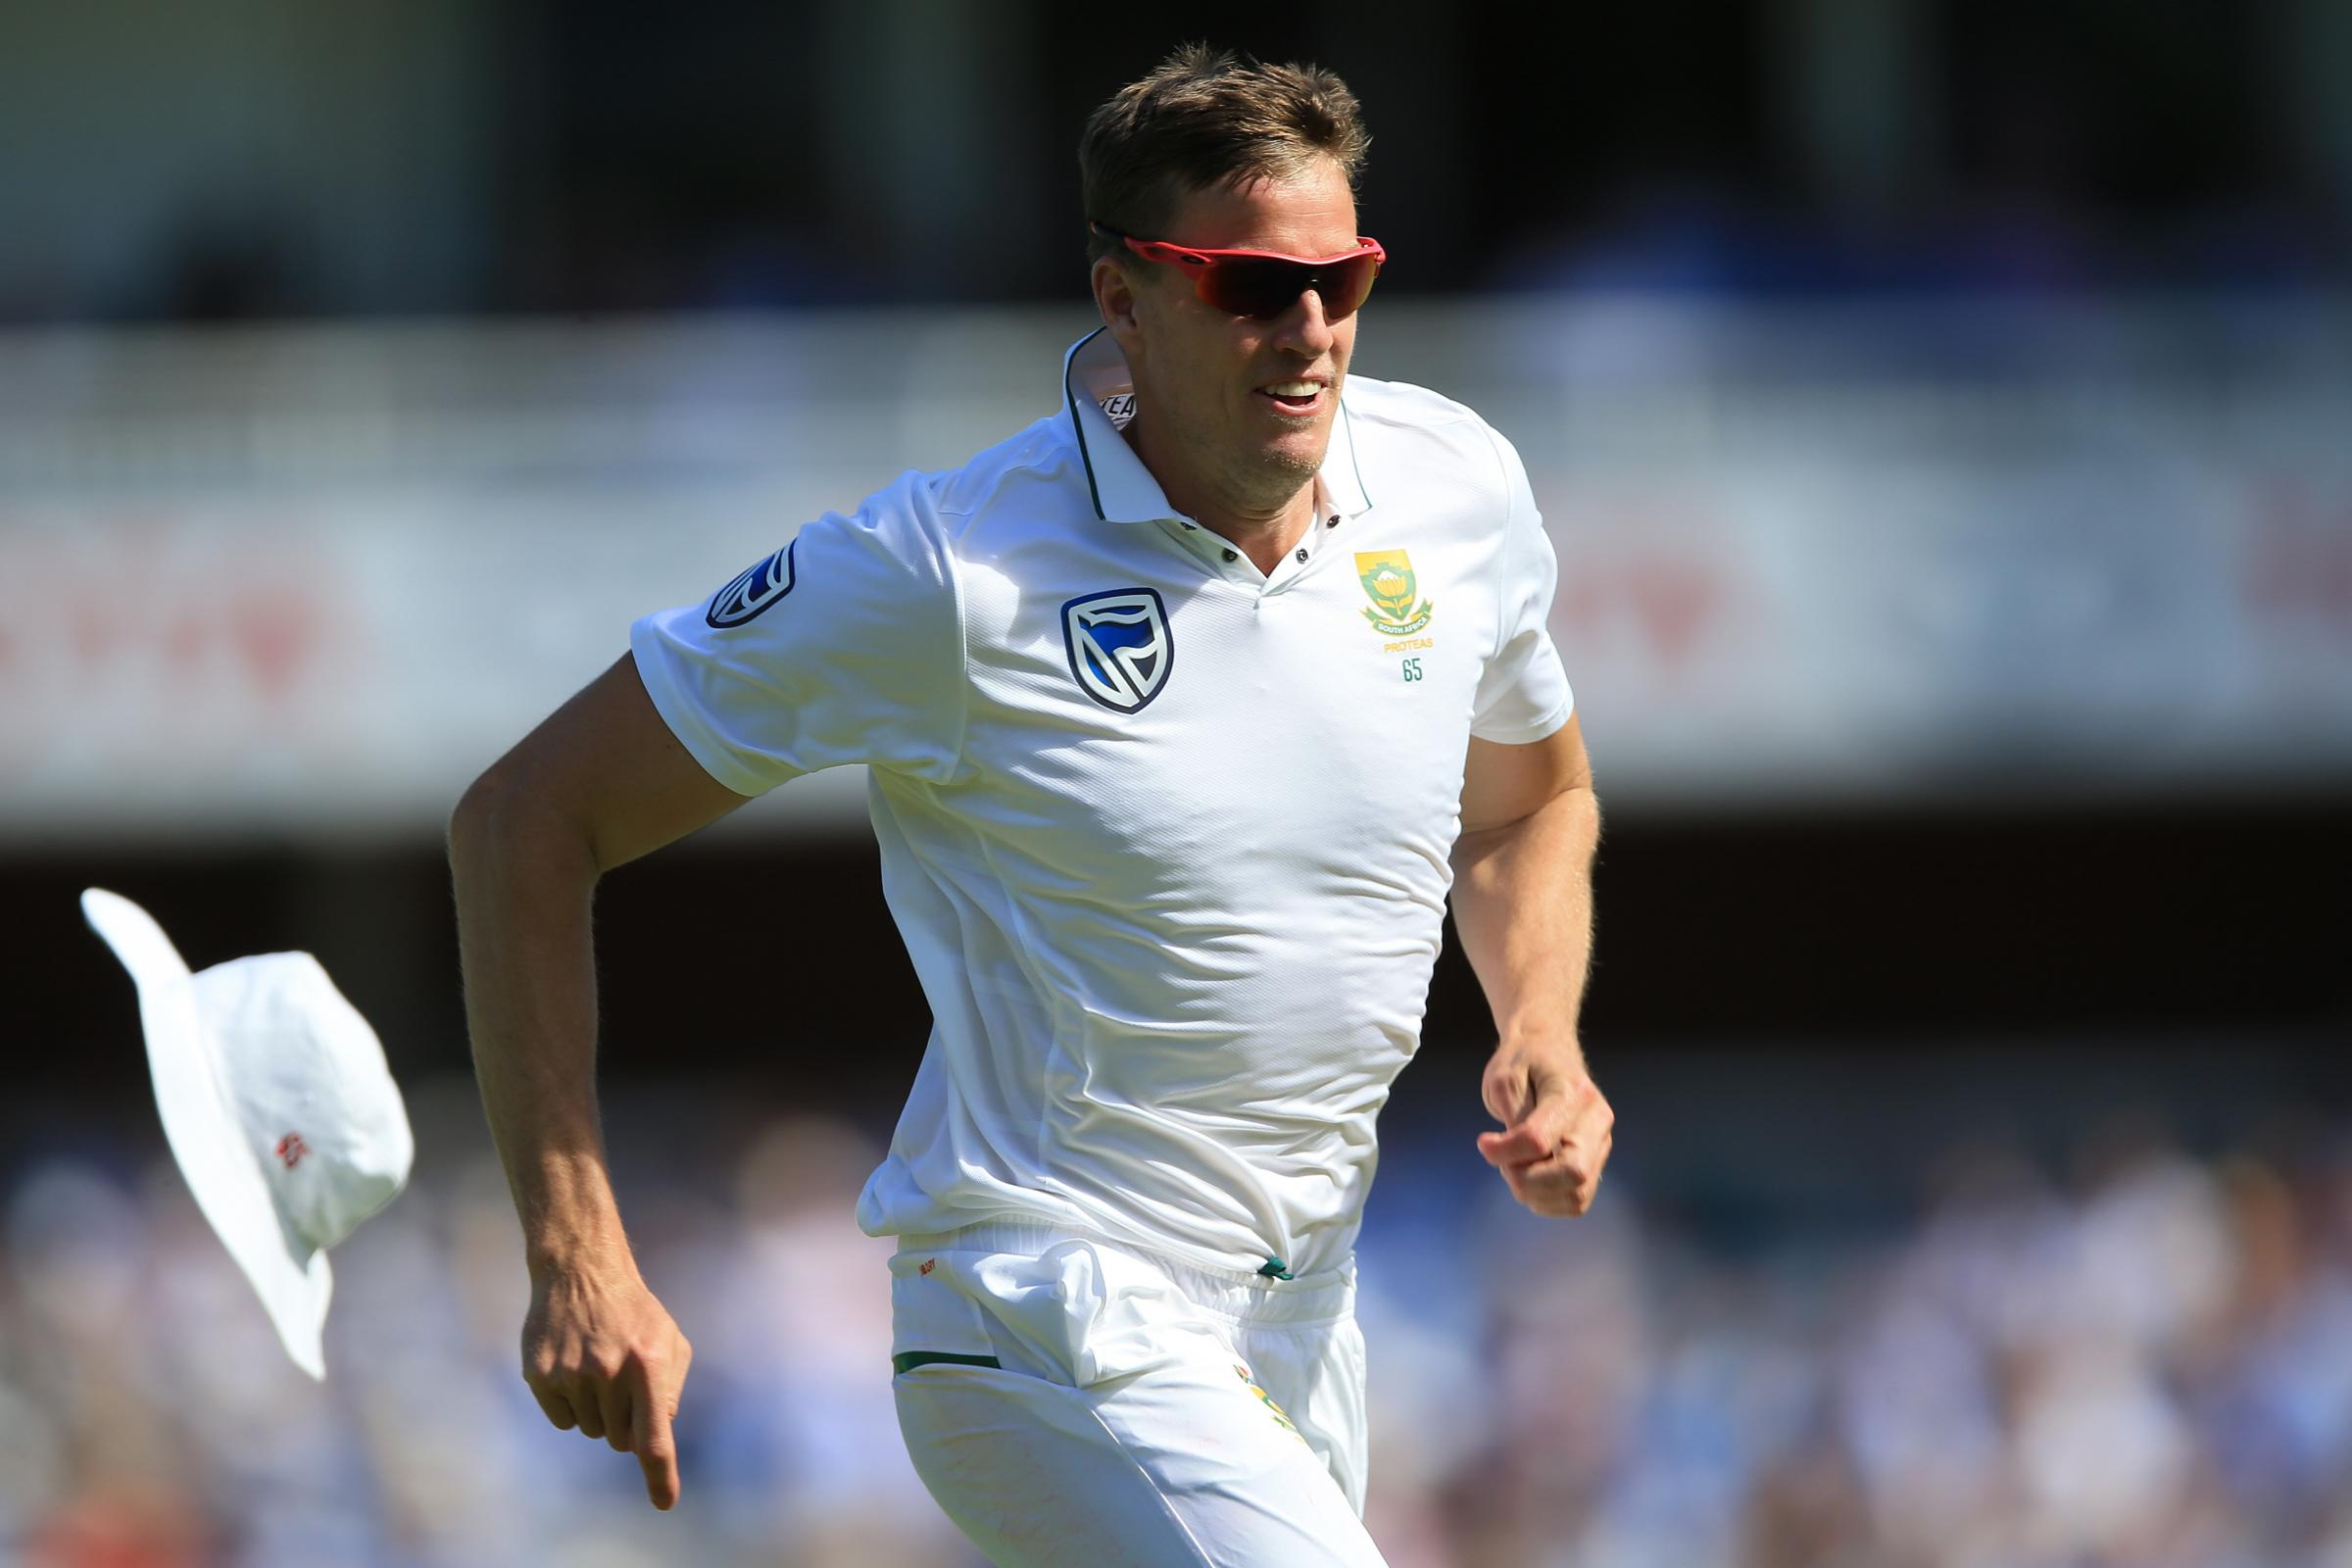 Morne Morkel produced a deadly spell of bowling for champions-elect Surrey